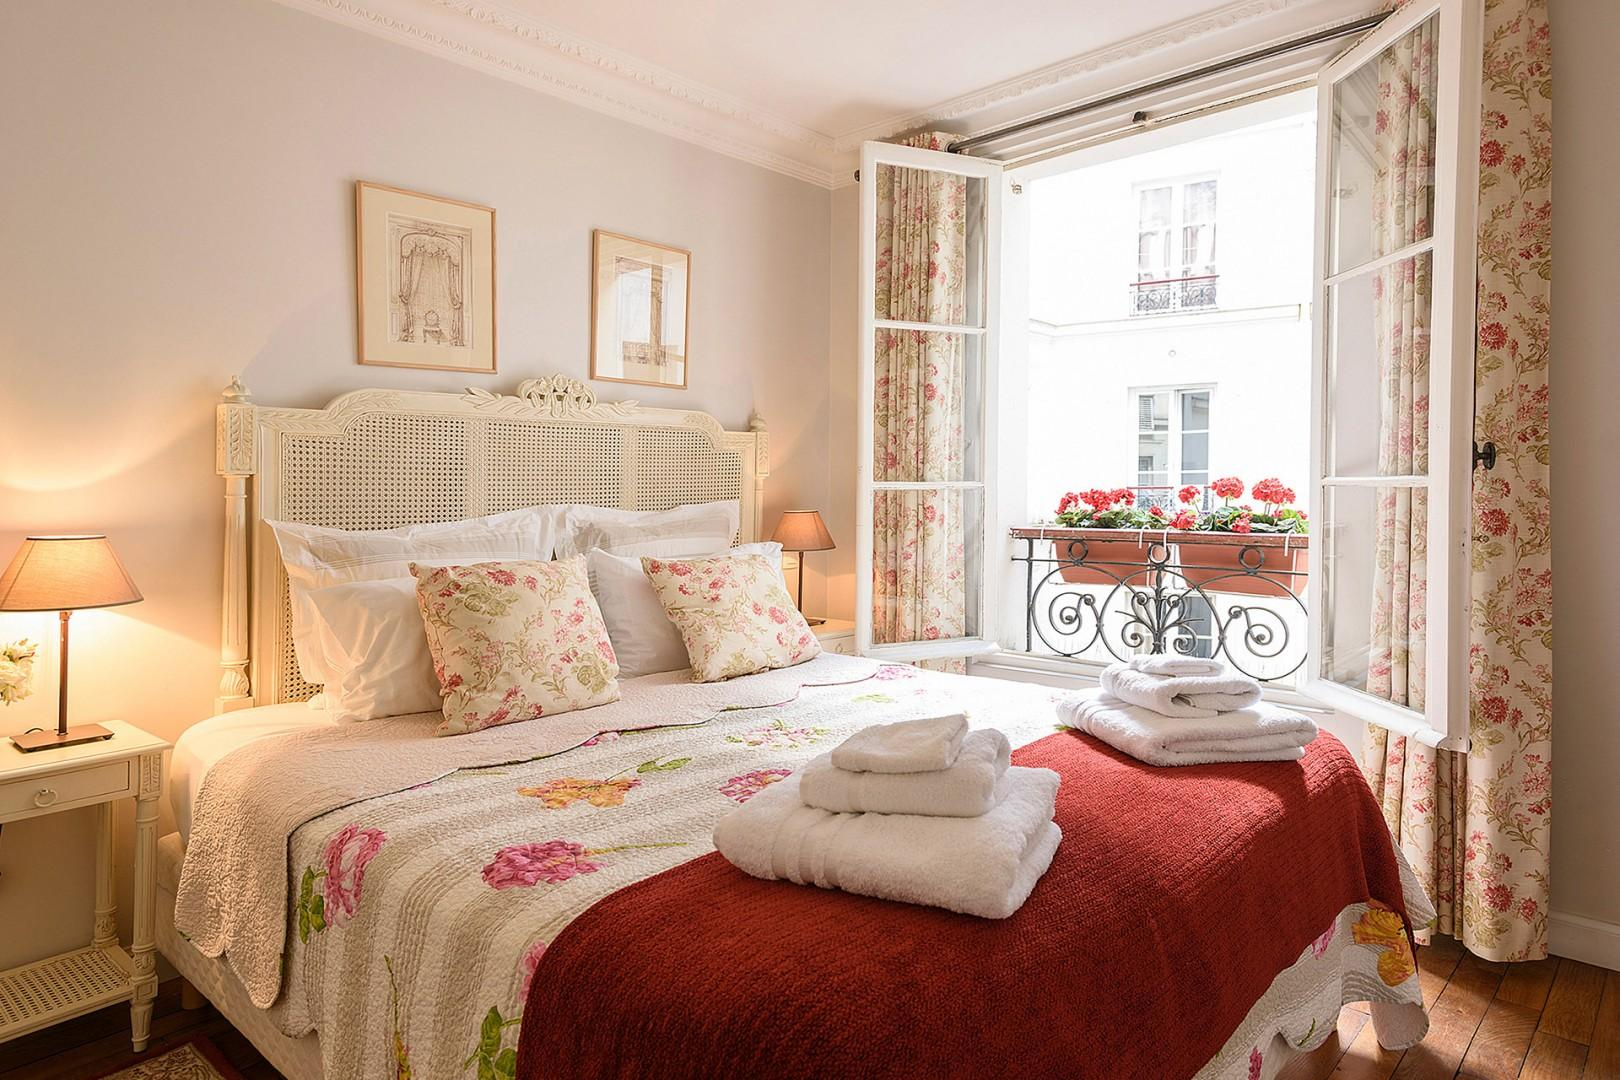 Relax in the lovely French bedroom with a comfortable bed.